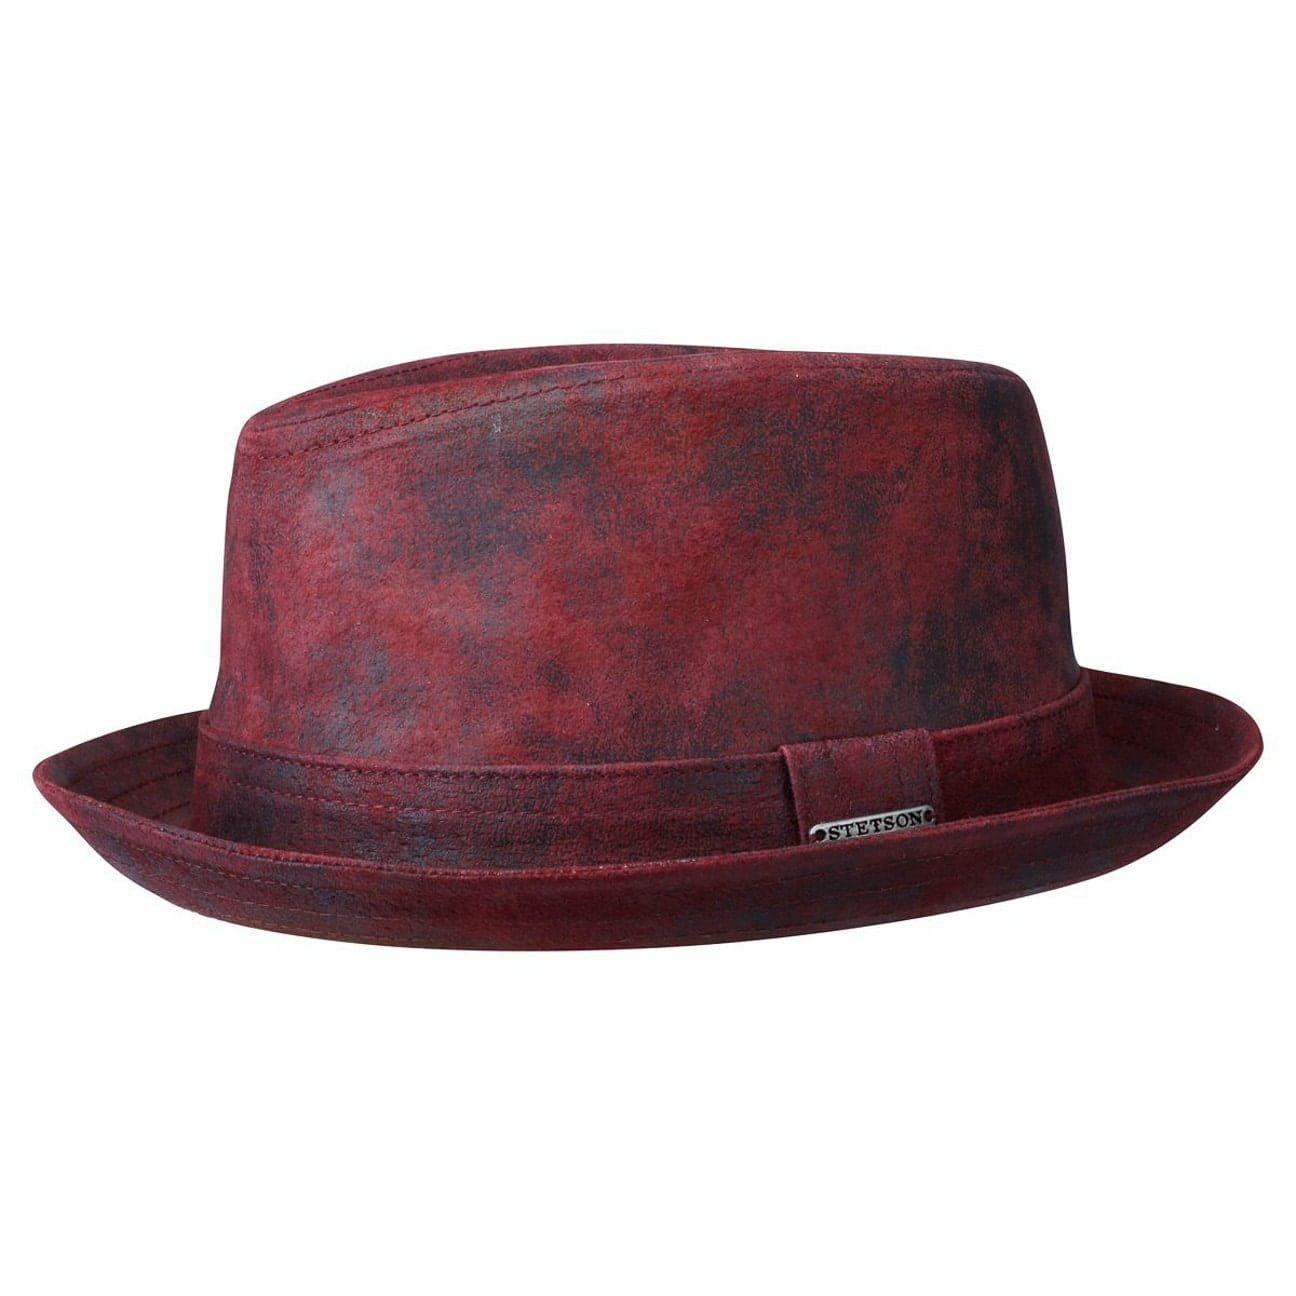 047aa8b9d9769 ... Radcliff Leather Player by Stetson - bordeaux 1 ...